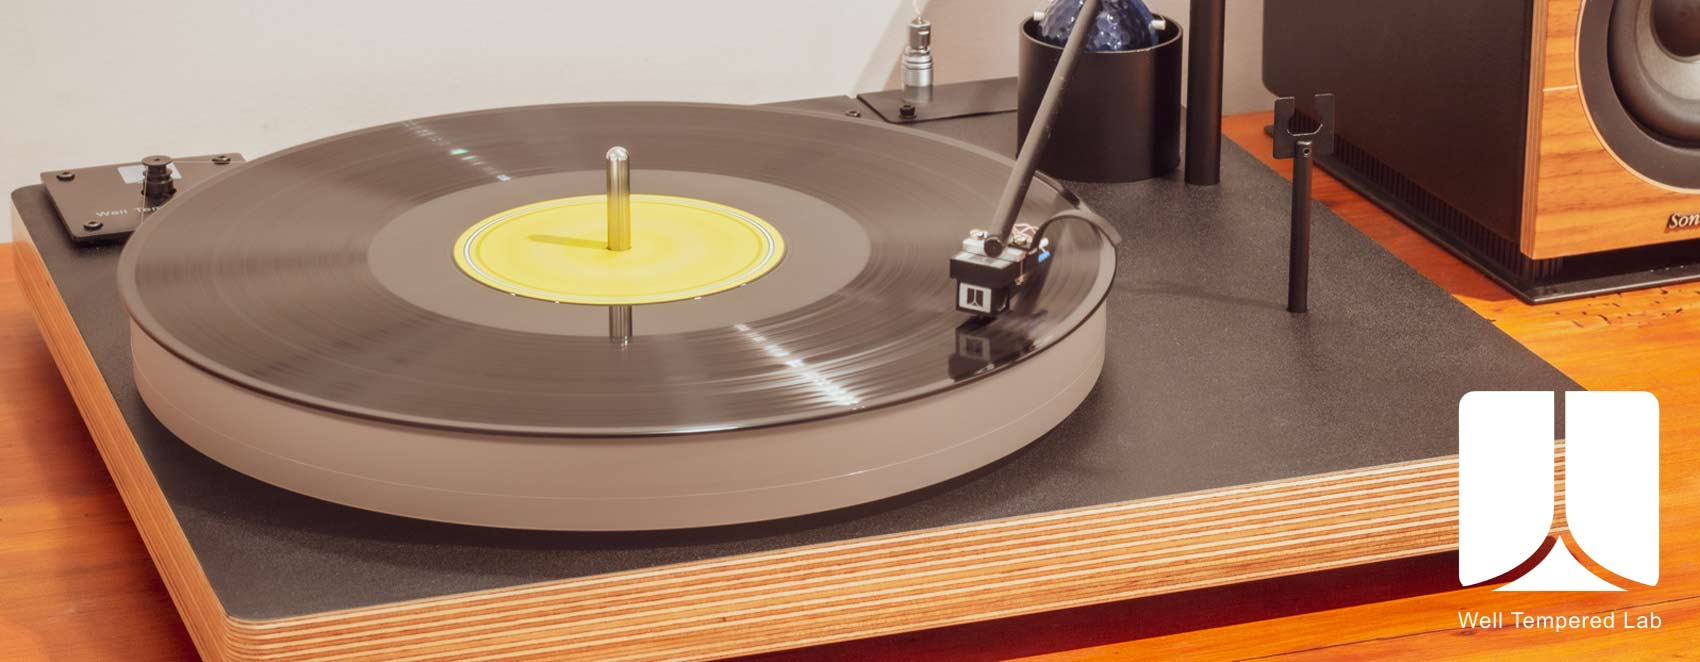 Well Tempered Lab turntables